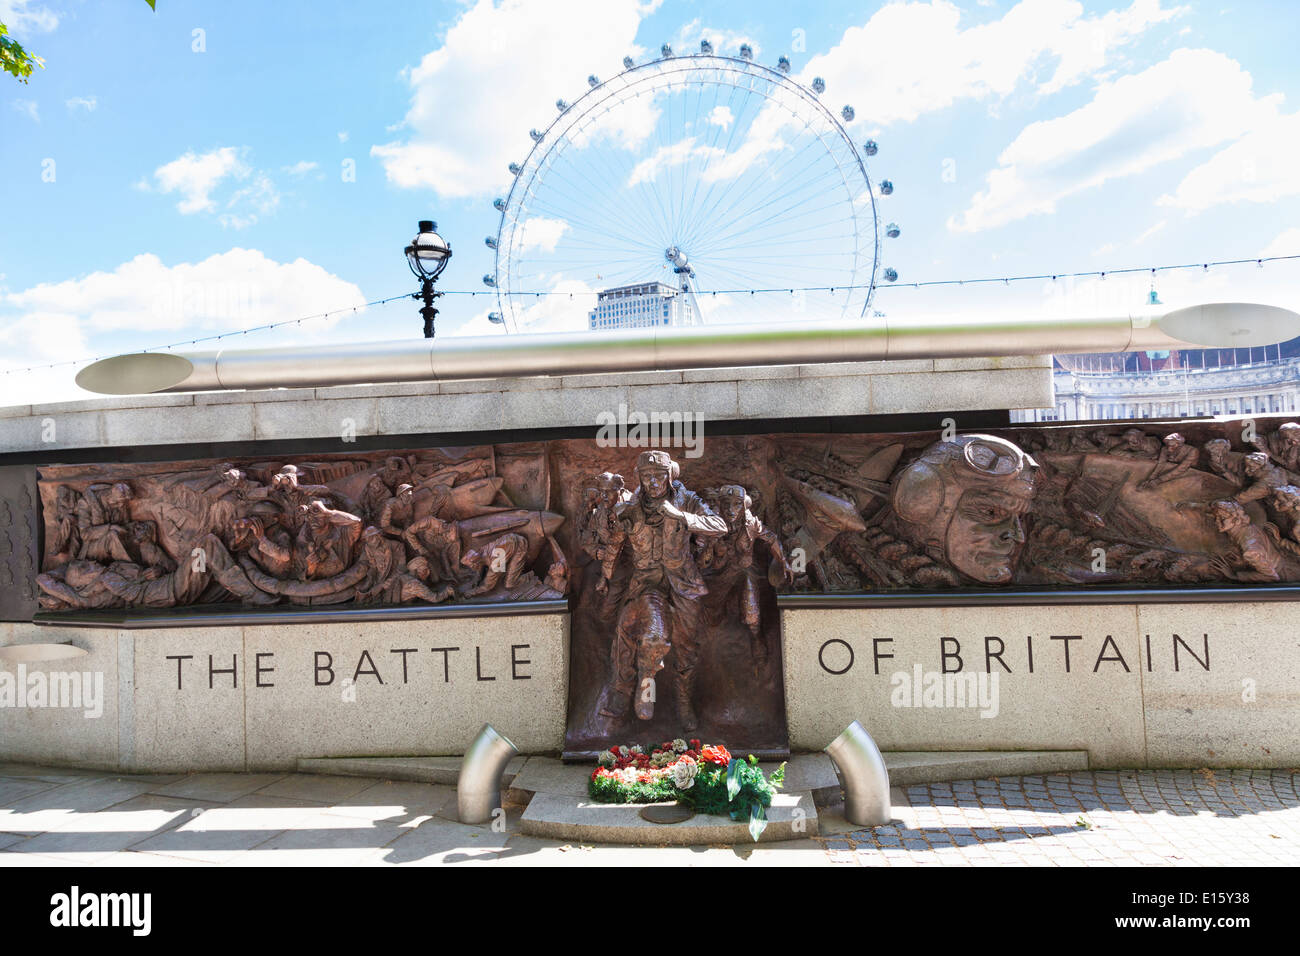 Memorial to the Battle of Britain on the Victoria Embankment London. - Stock Image